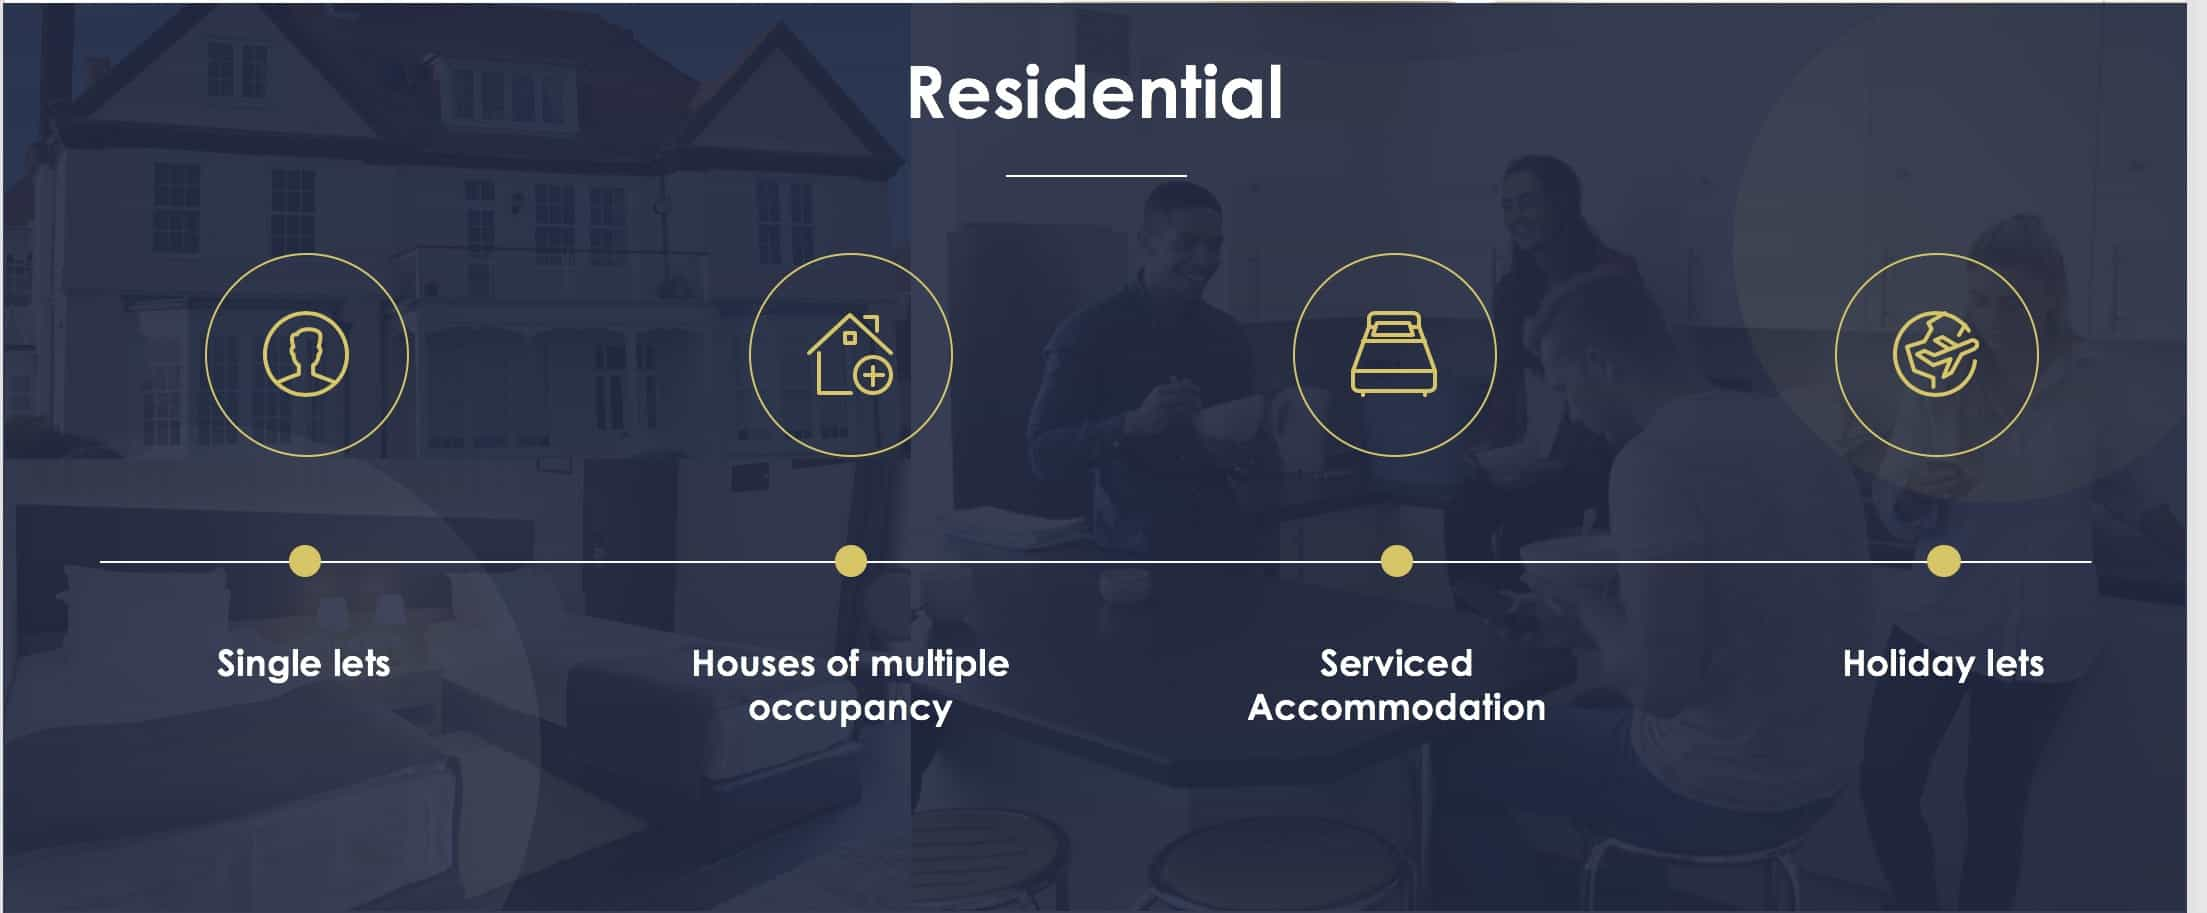 Types of residential property investments